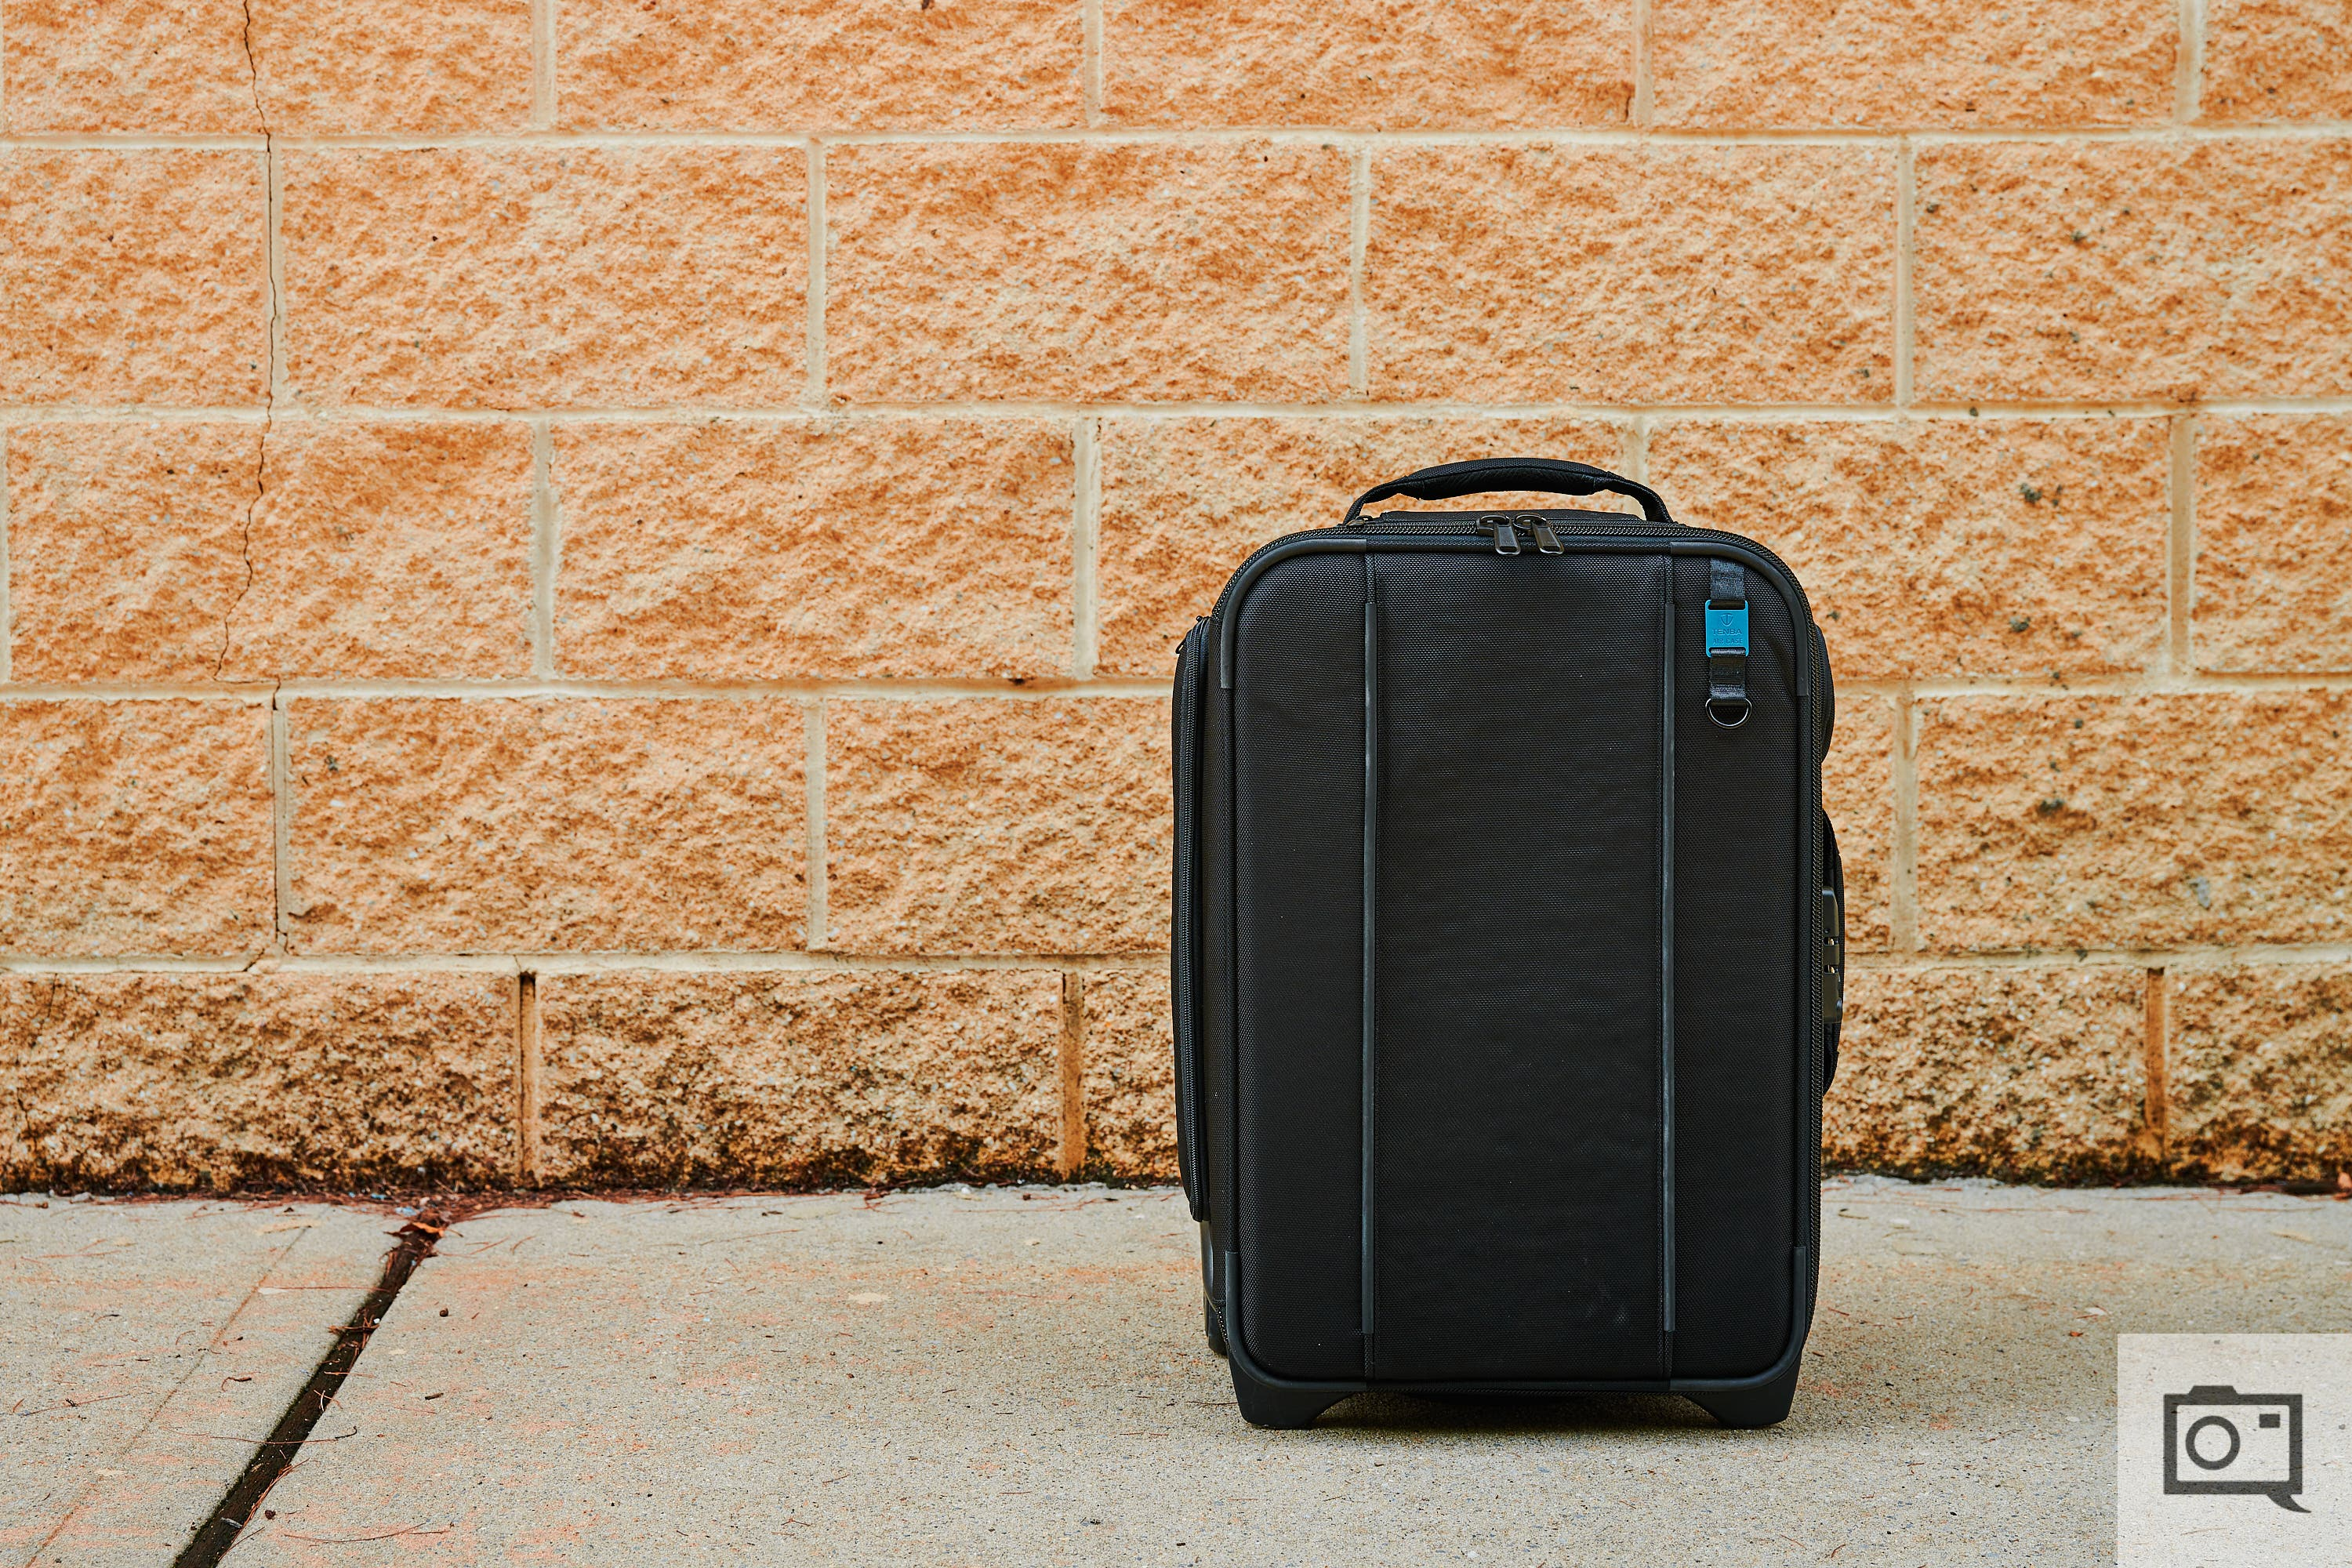 Review: Tenba Roadie Air Case Roller 21 (Perfect for Frequent Flyers)